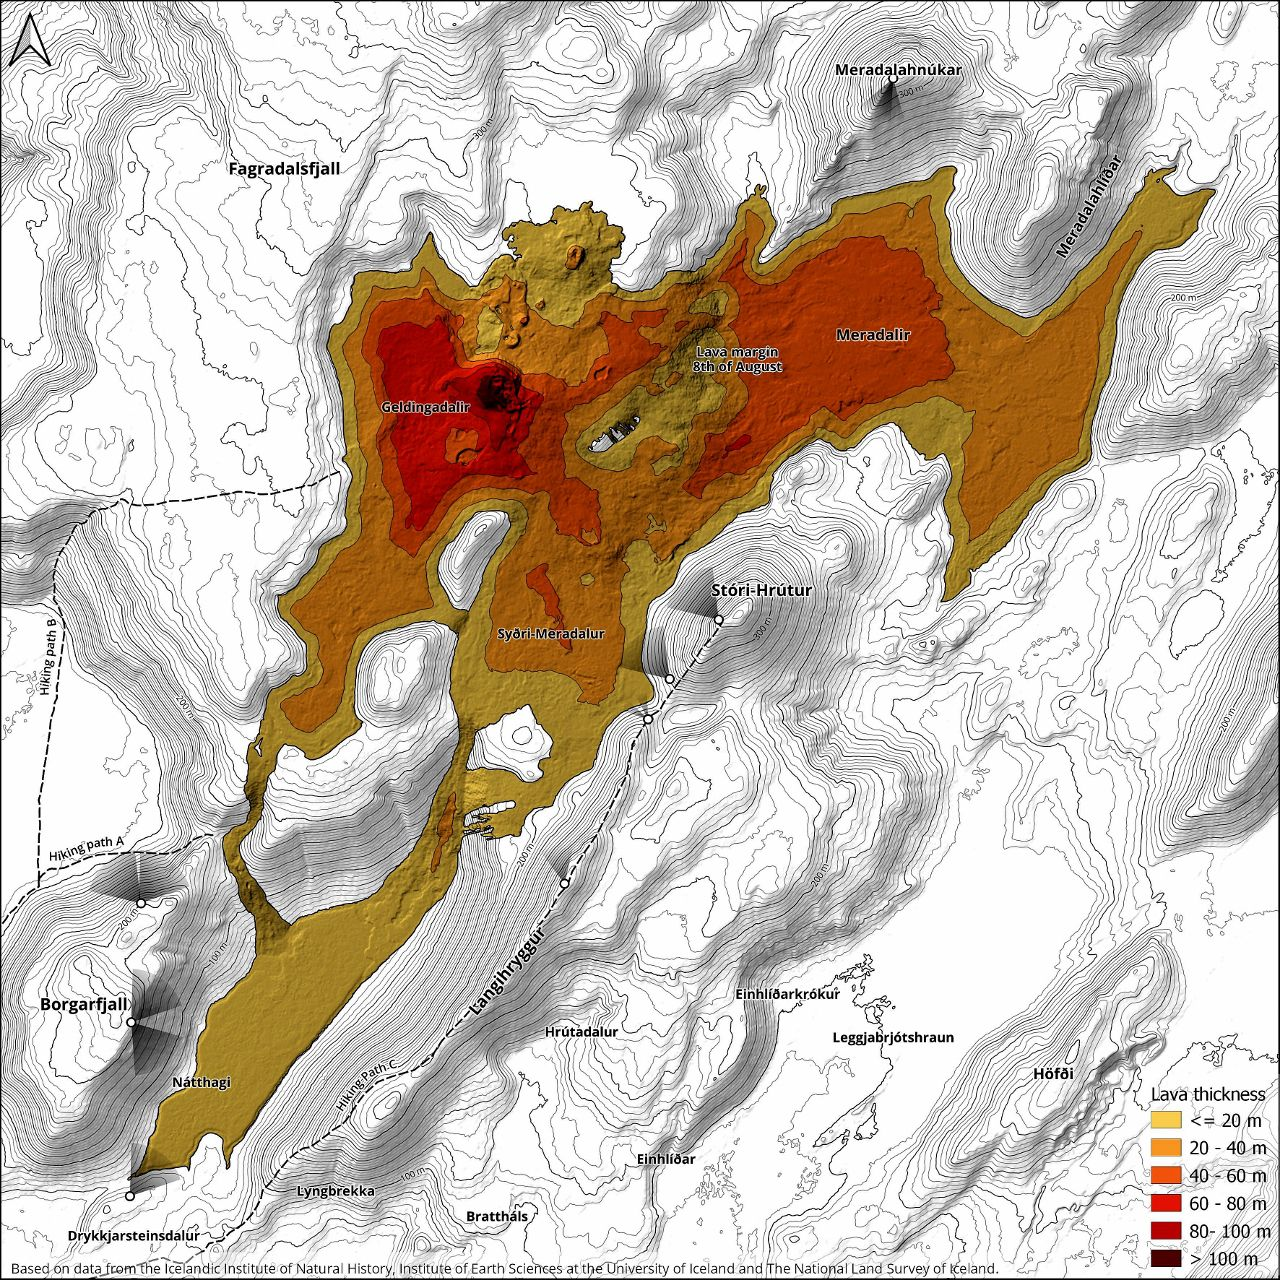 Fagradalsfjall - thickness of the lava and position of the webcams - Doc. Institute of Natural History & al.